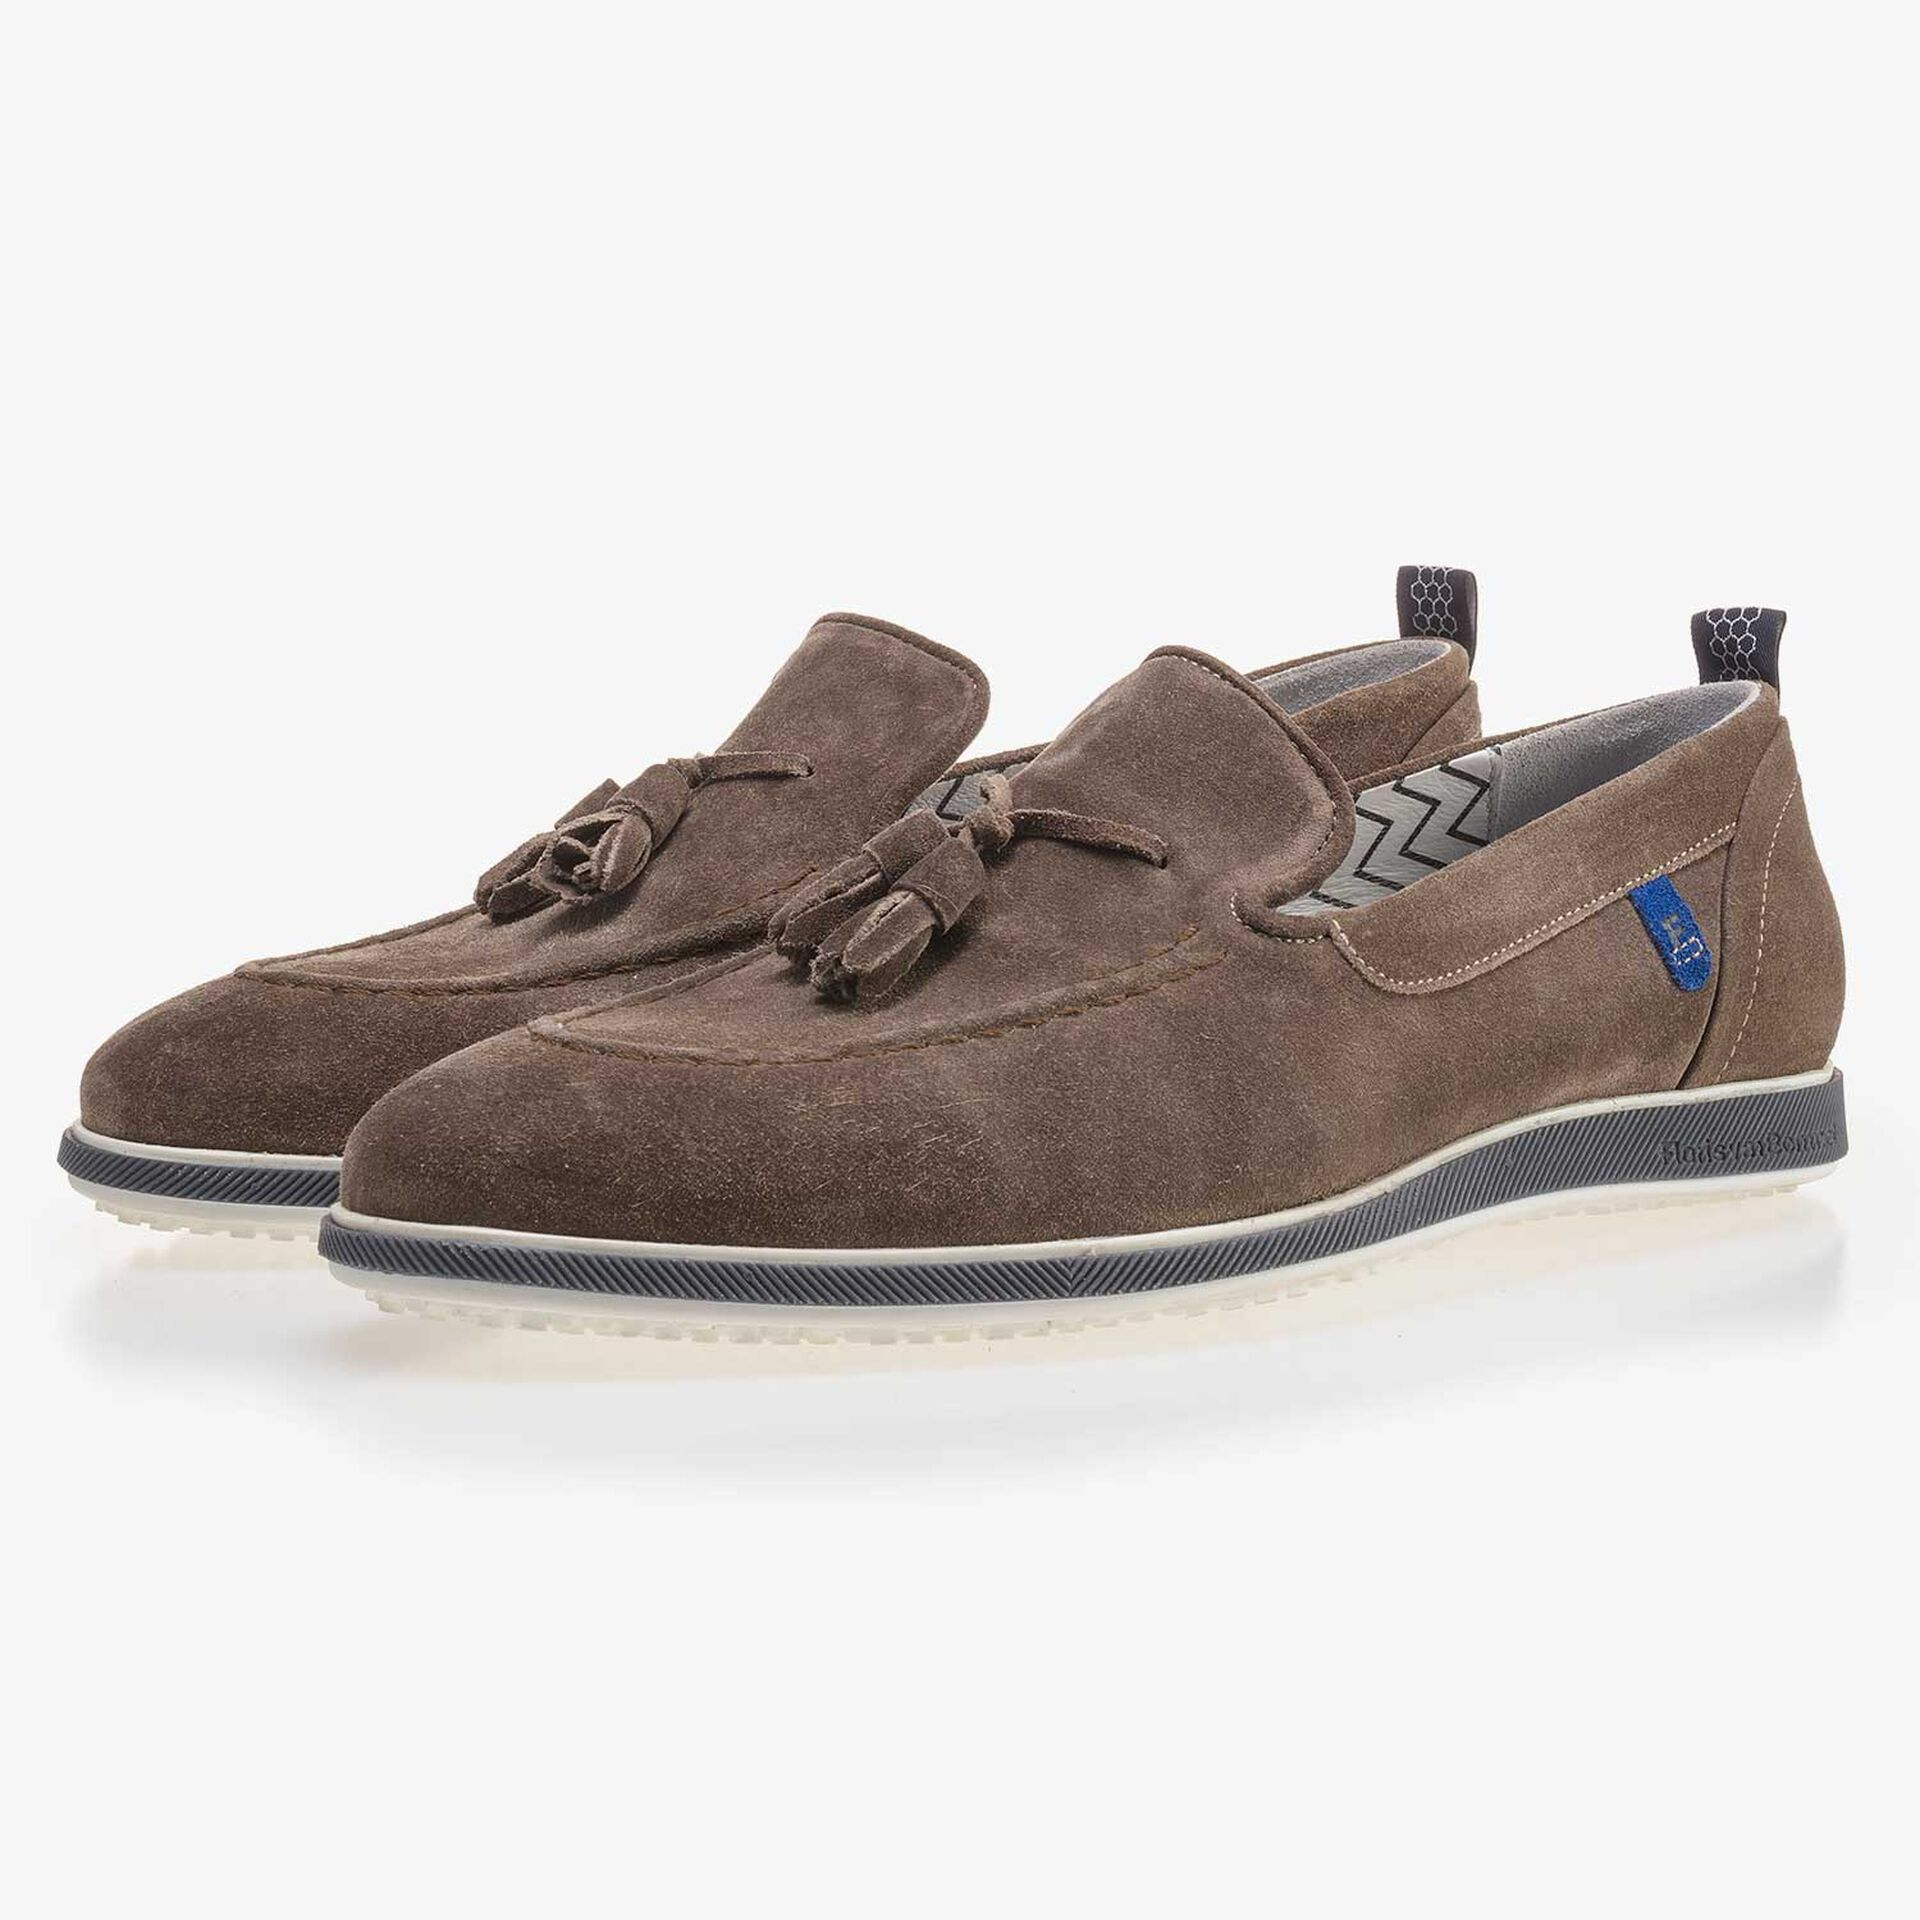 Taupe-coloured suede leather tassel loafer